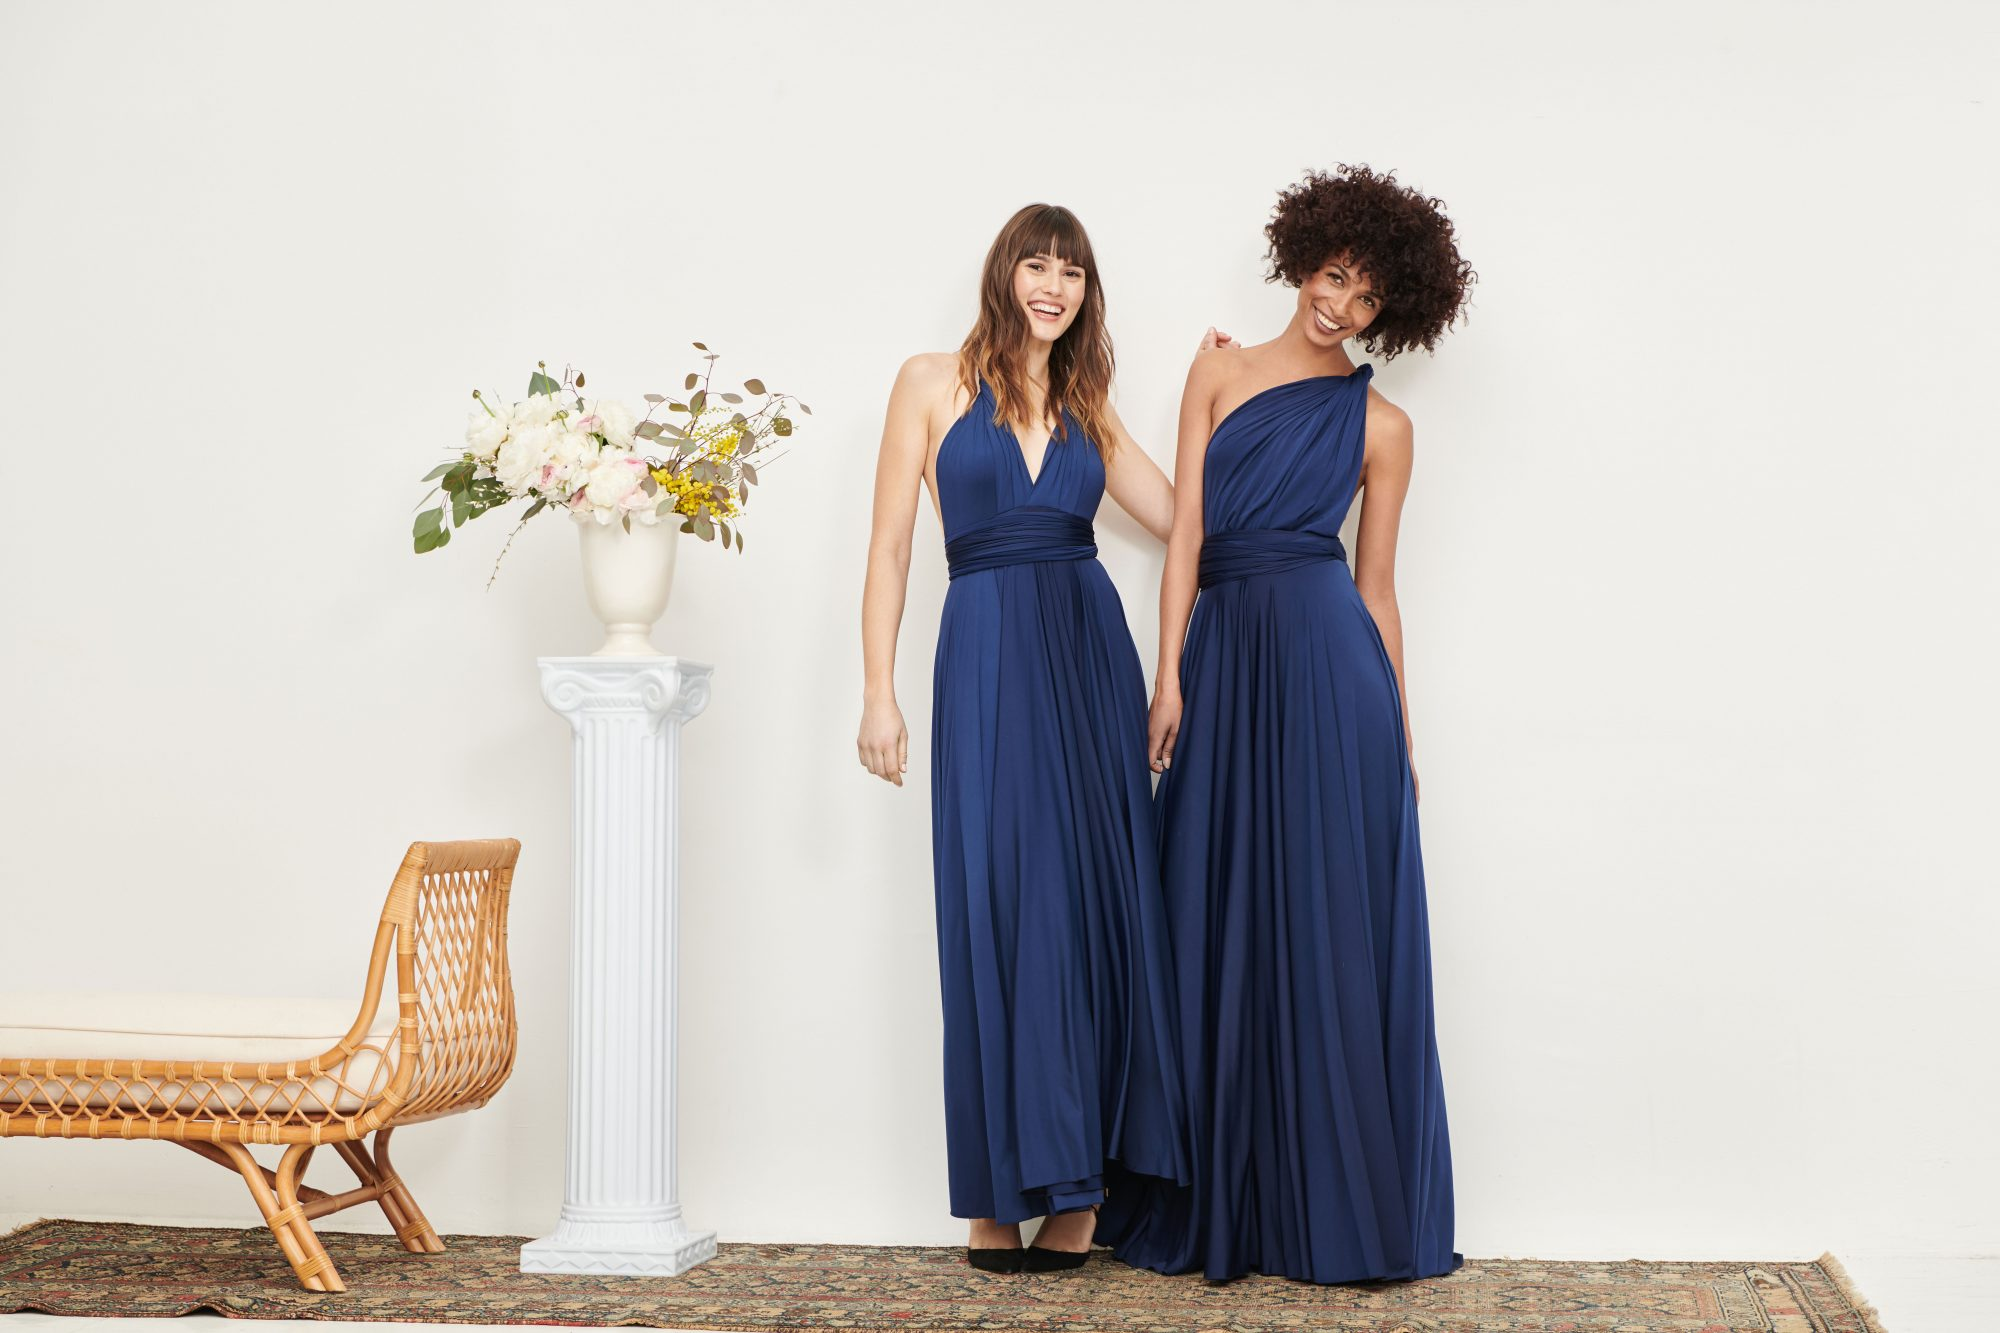 Rent the runway wedding concierge service southern living rent the runway bridesmaid dresses ombrellifo Gallery